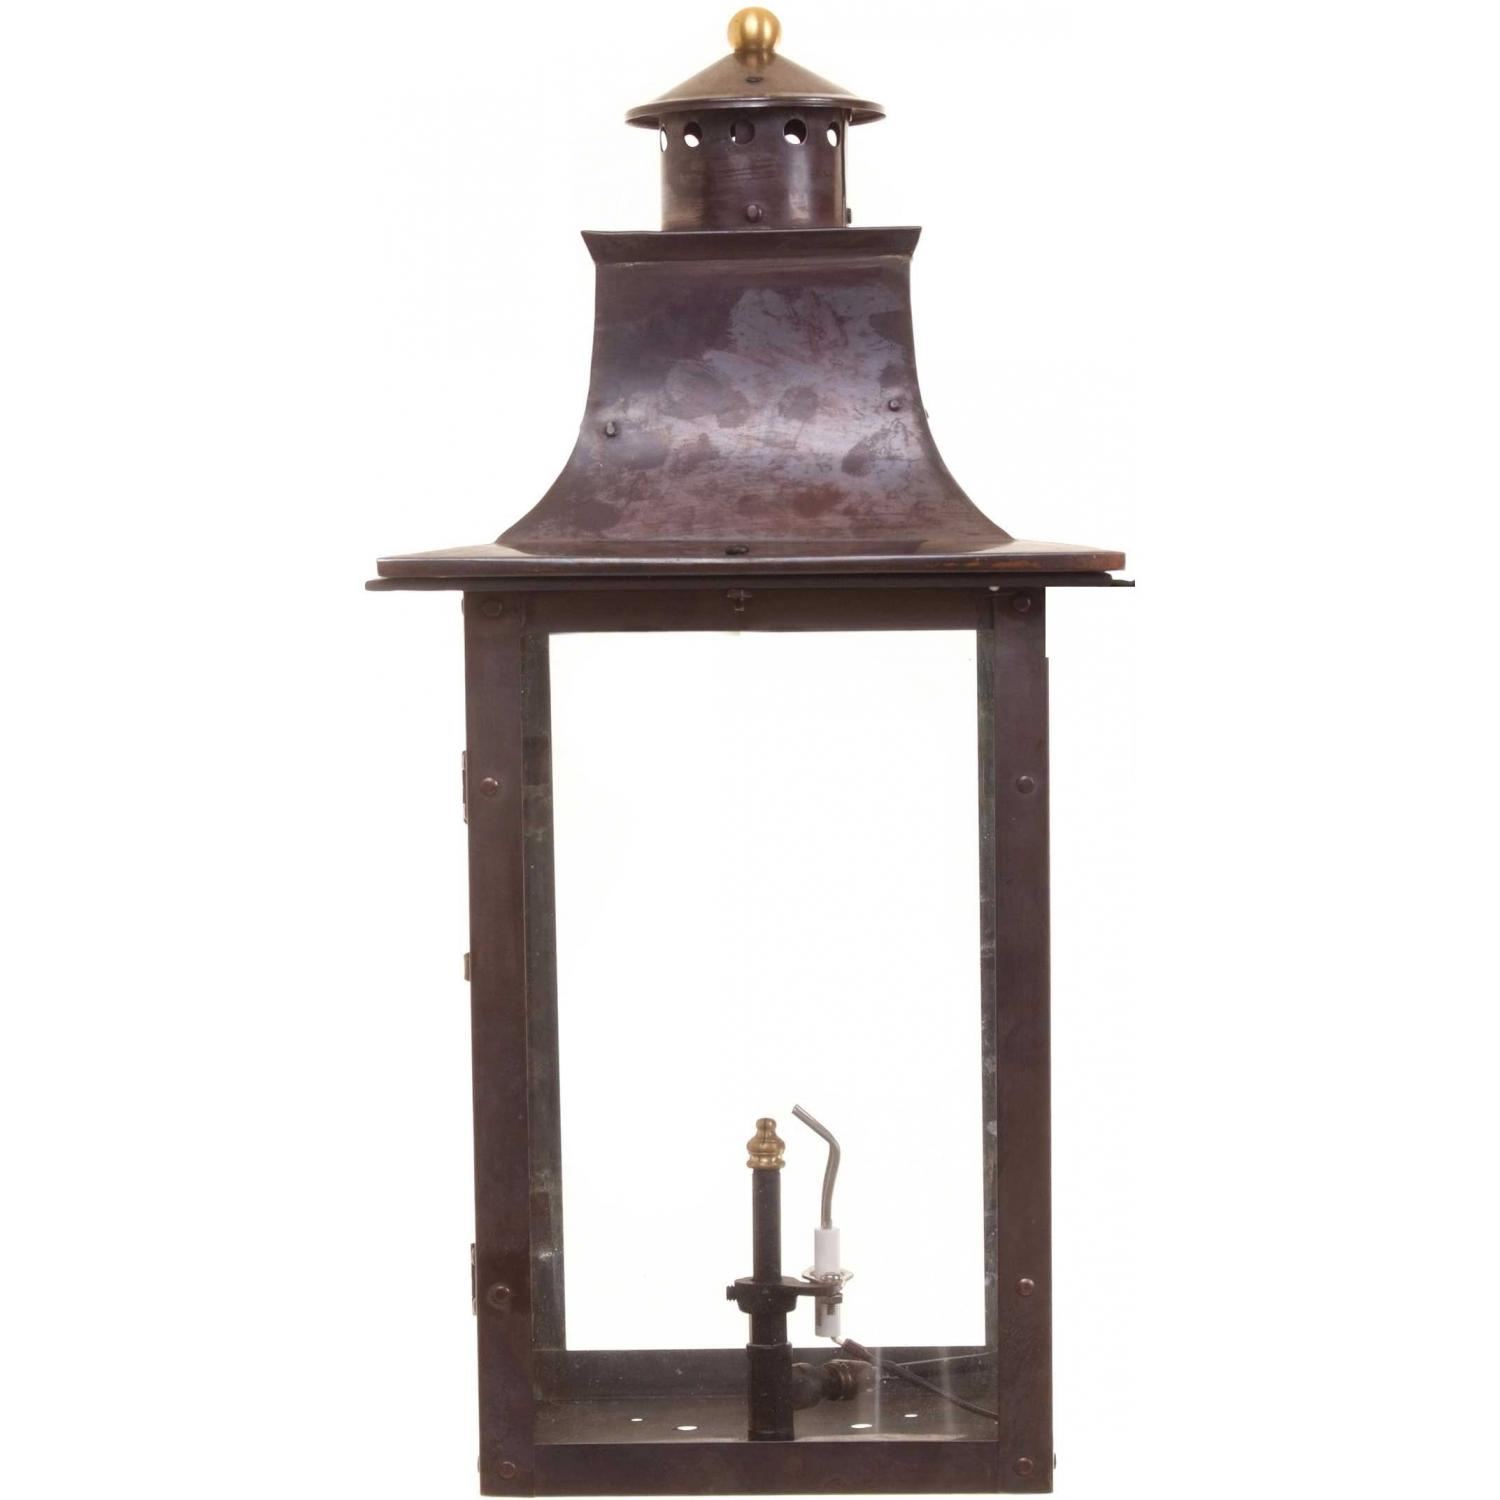 Regency GL21 Faye Rue Small Natural Gas Light With Open Flame Burner And Electronic Ignition On Decorative Wall Mount